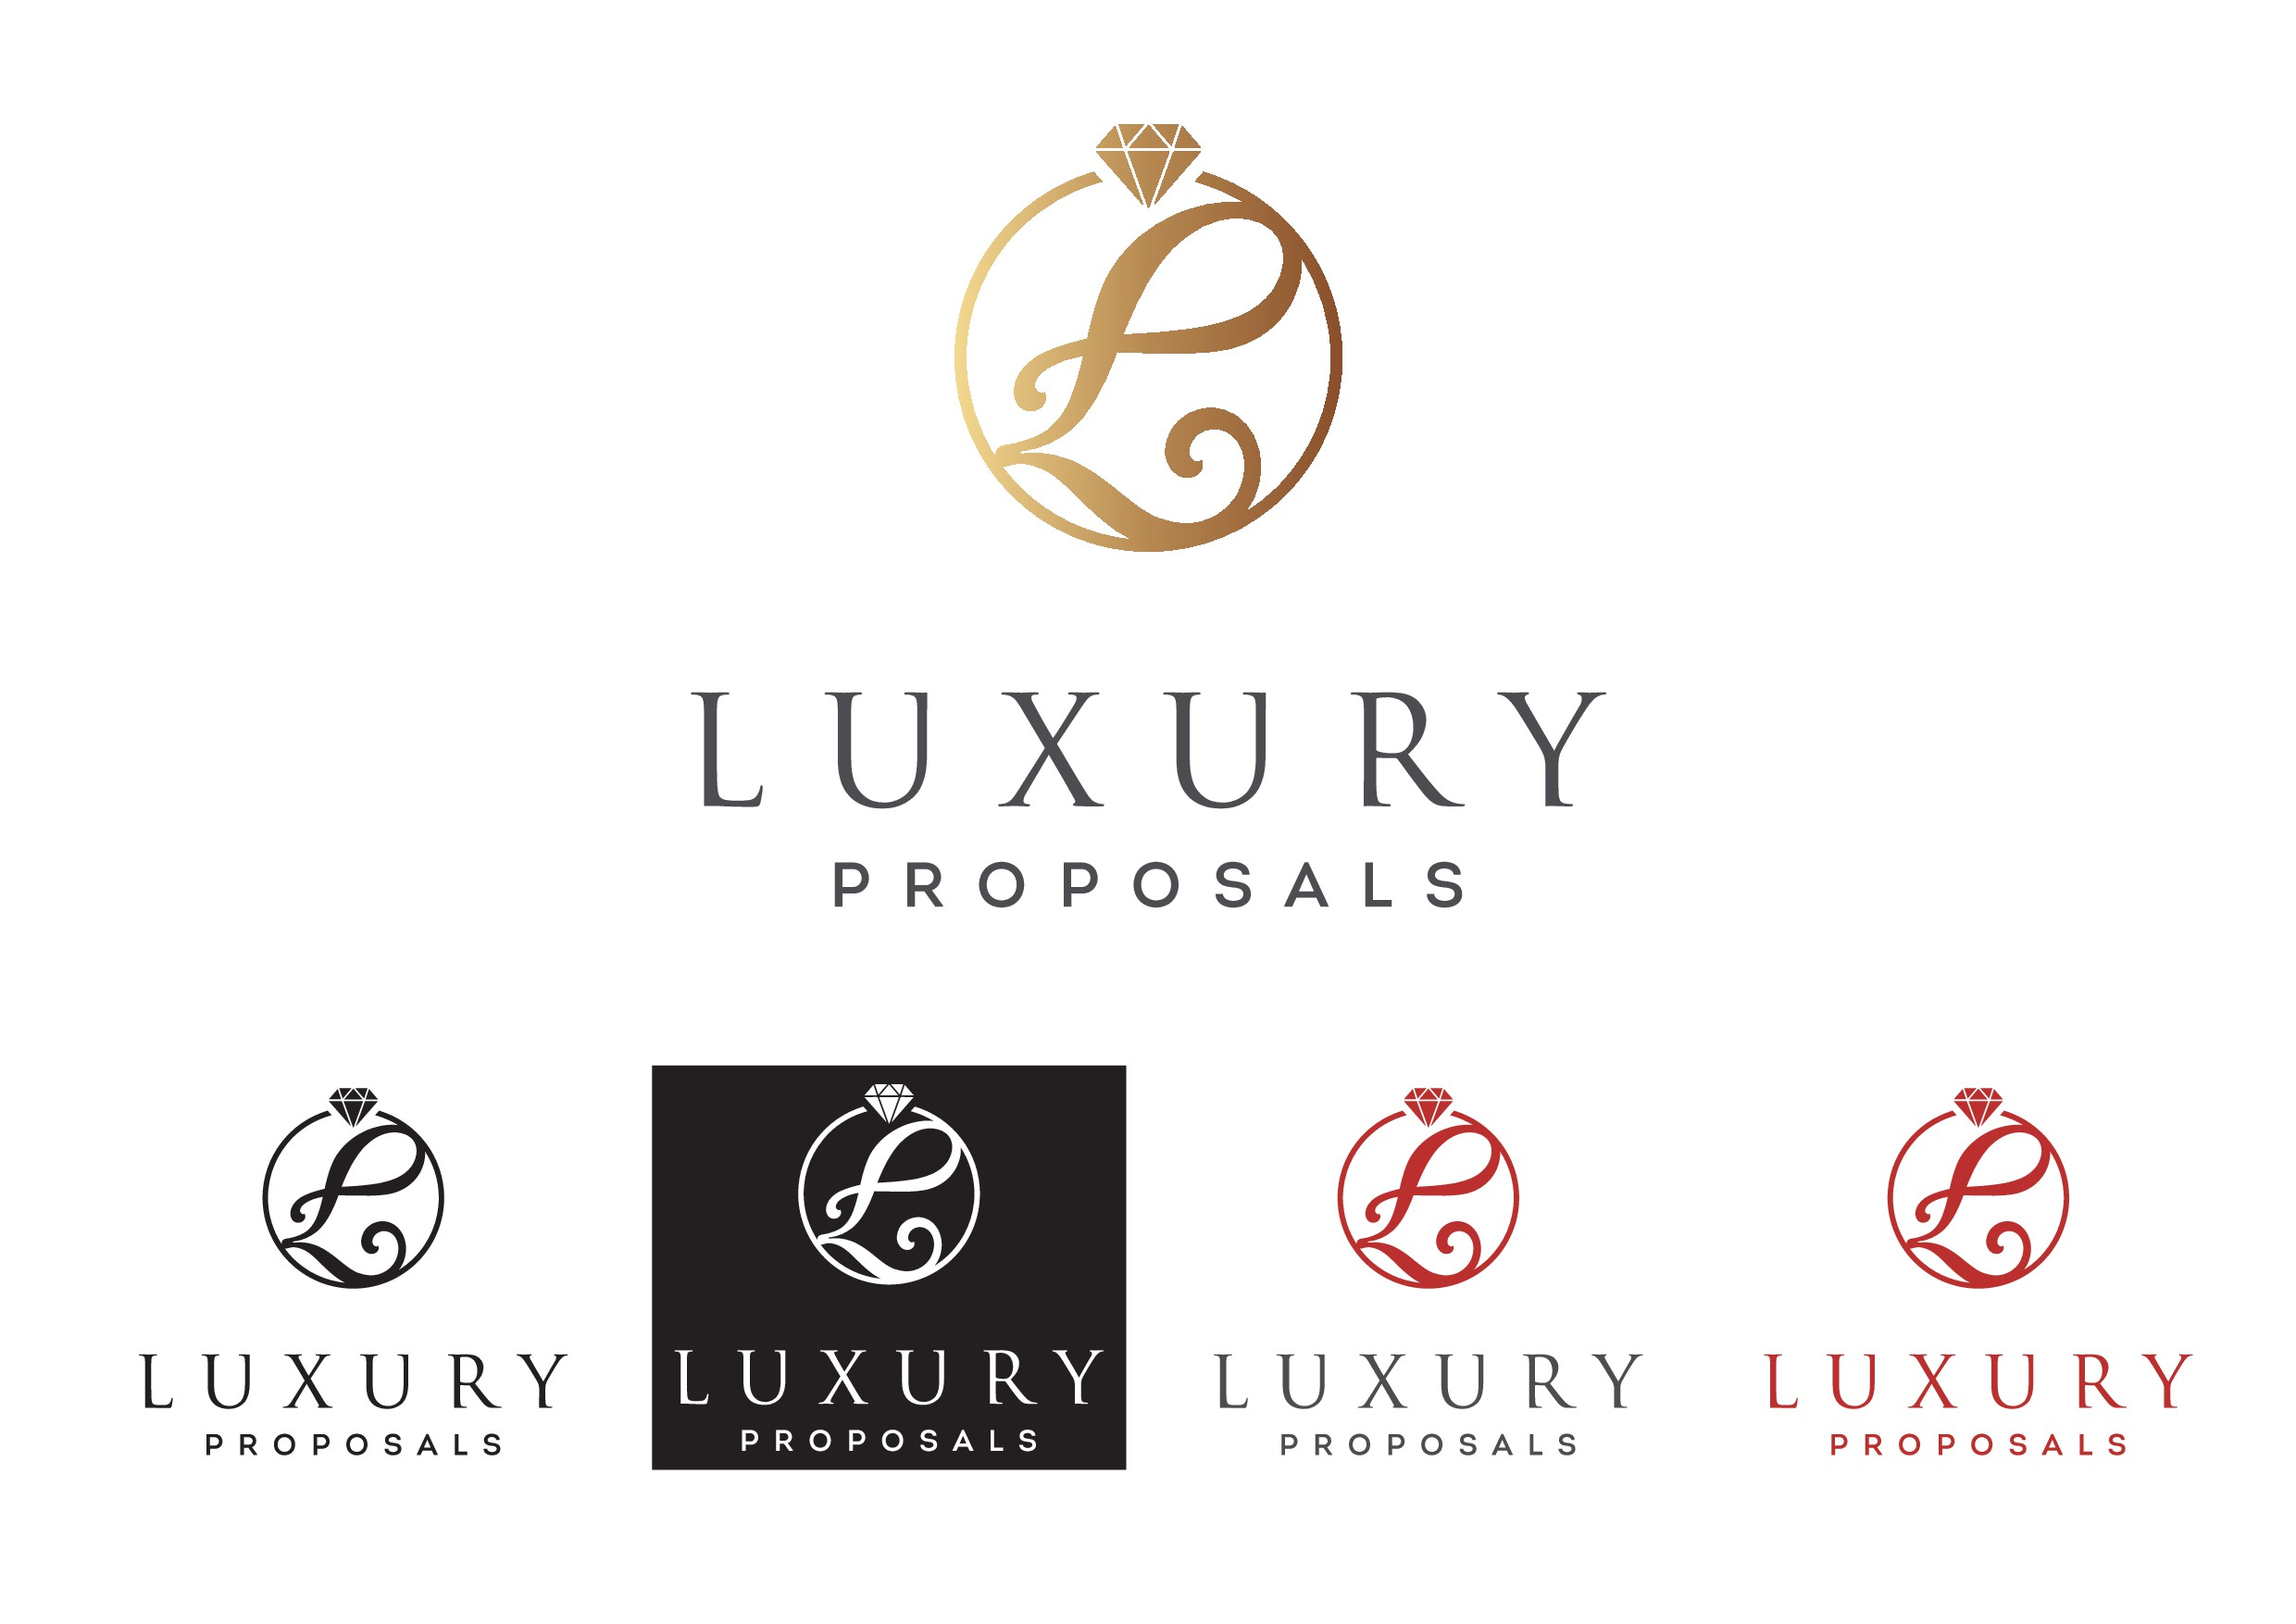 Luxurious & classy PROPOSAL business- white background/gold writing (please follow brief)